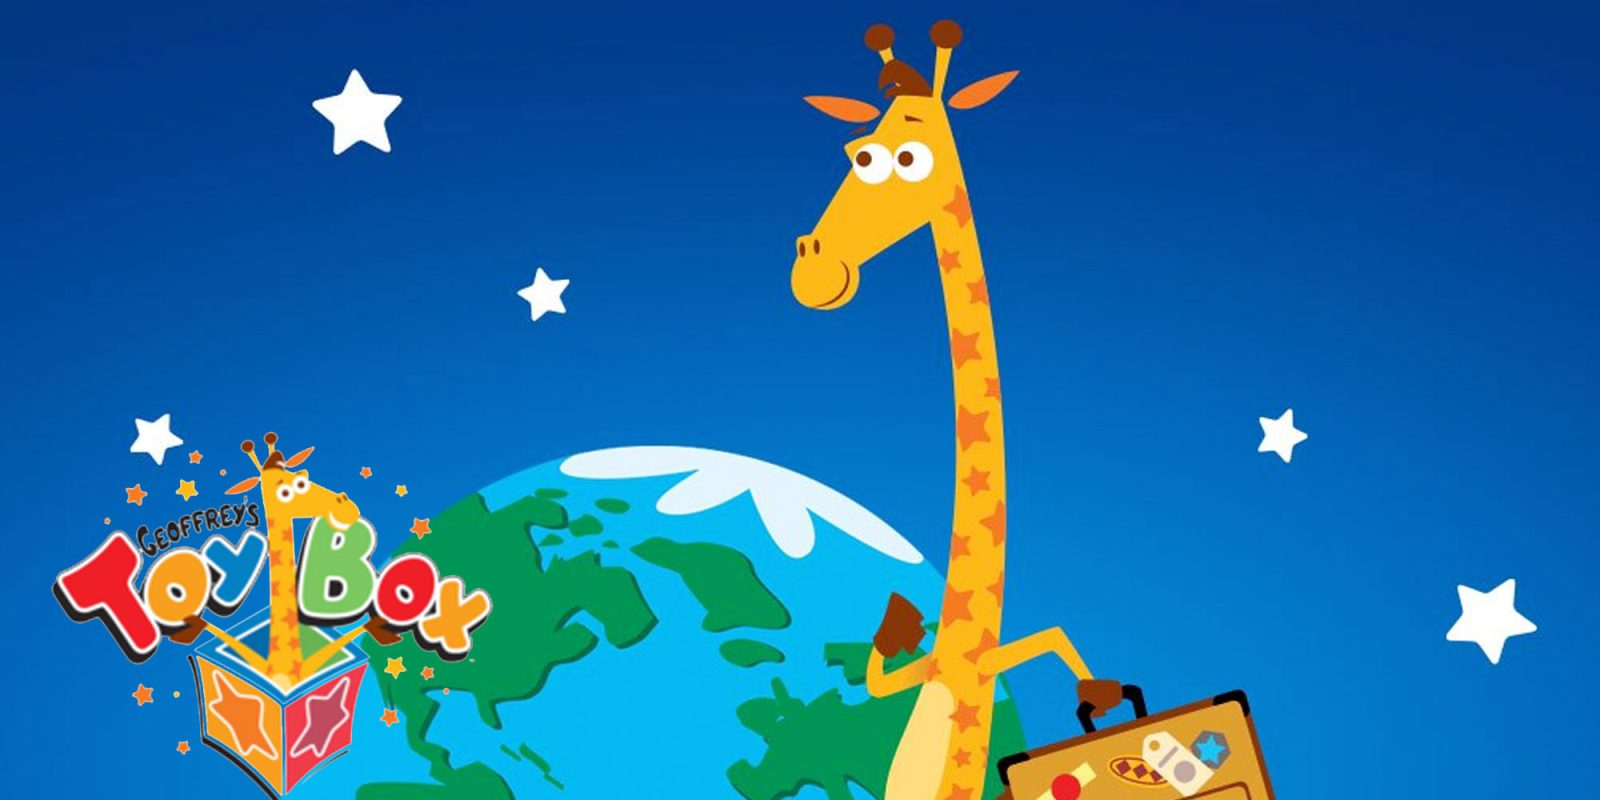 Toys R Us lives! The iconic toy store cancels bankruptcy filing, rebrands as Geoffrey's Toy Box